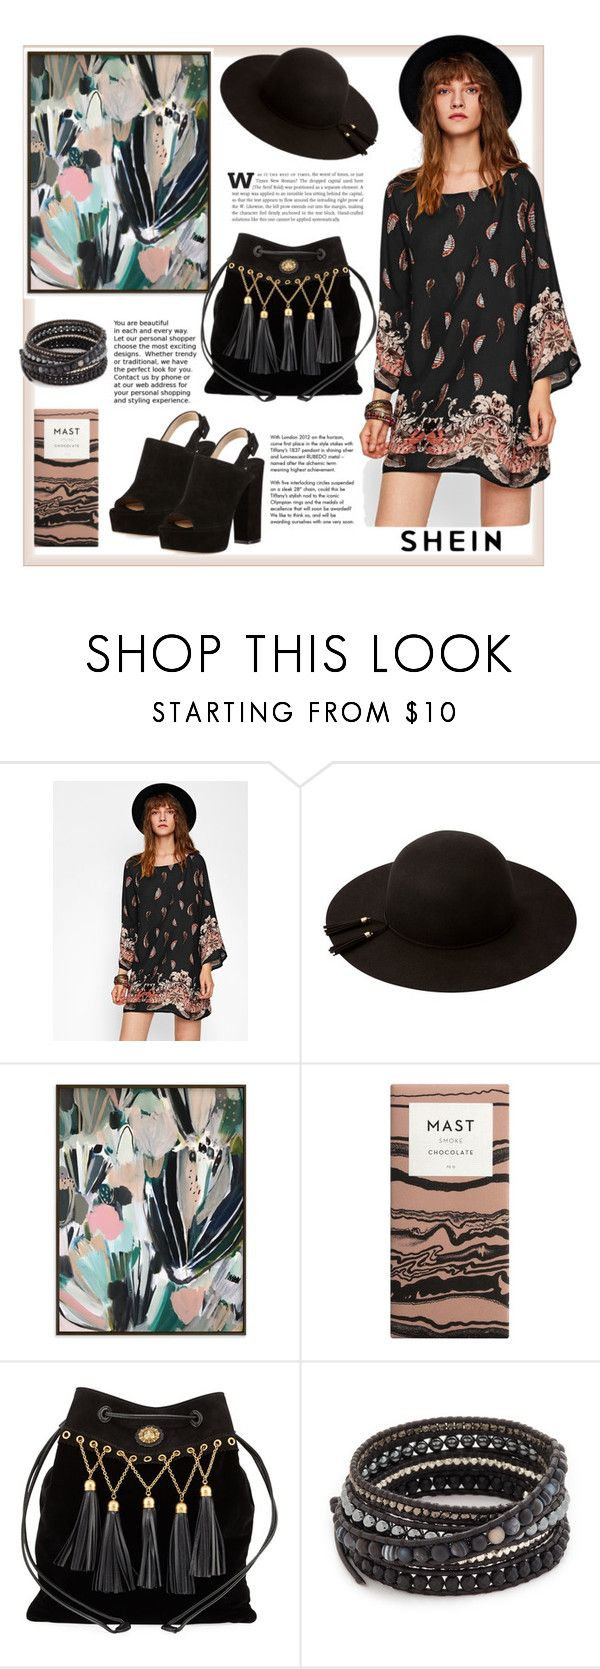 """Shein"" by natalyapril1976 on Polyvore featuring Mode, Miu Miu, Chan Luu, Paul Andrew und Tiffany & Co."